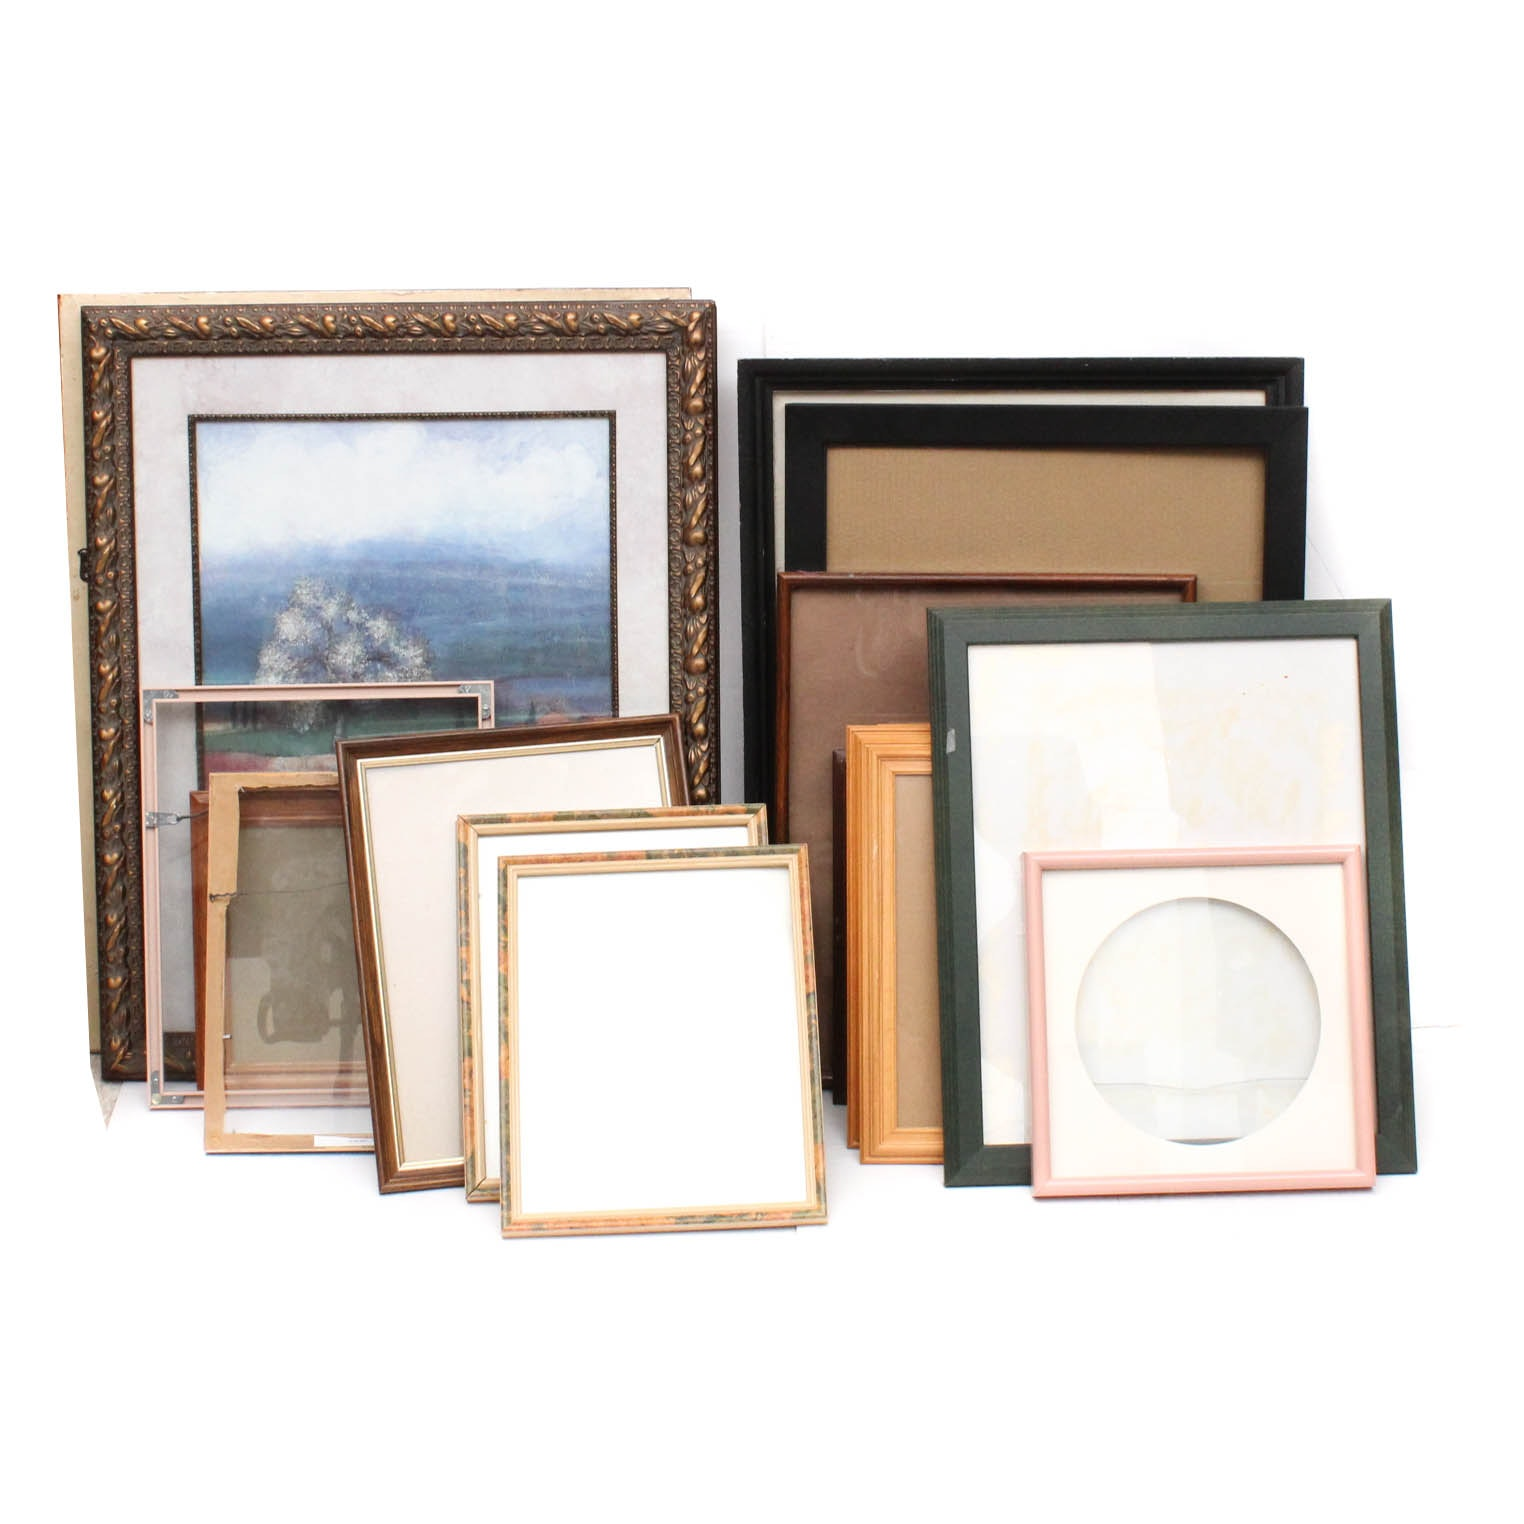 Over 70 Picture Frames of Every Size